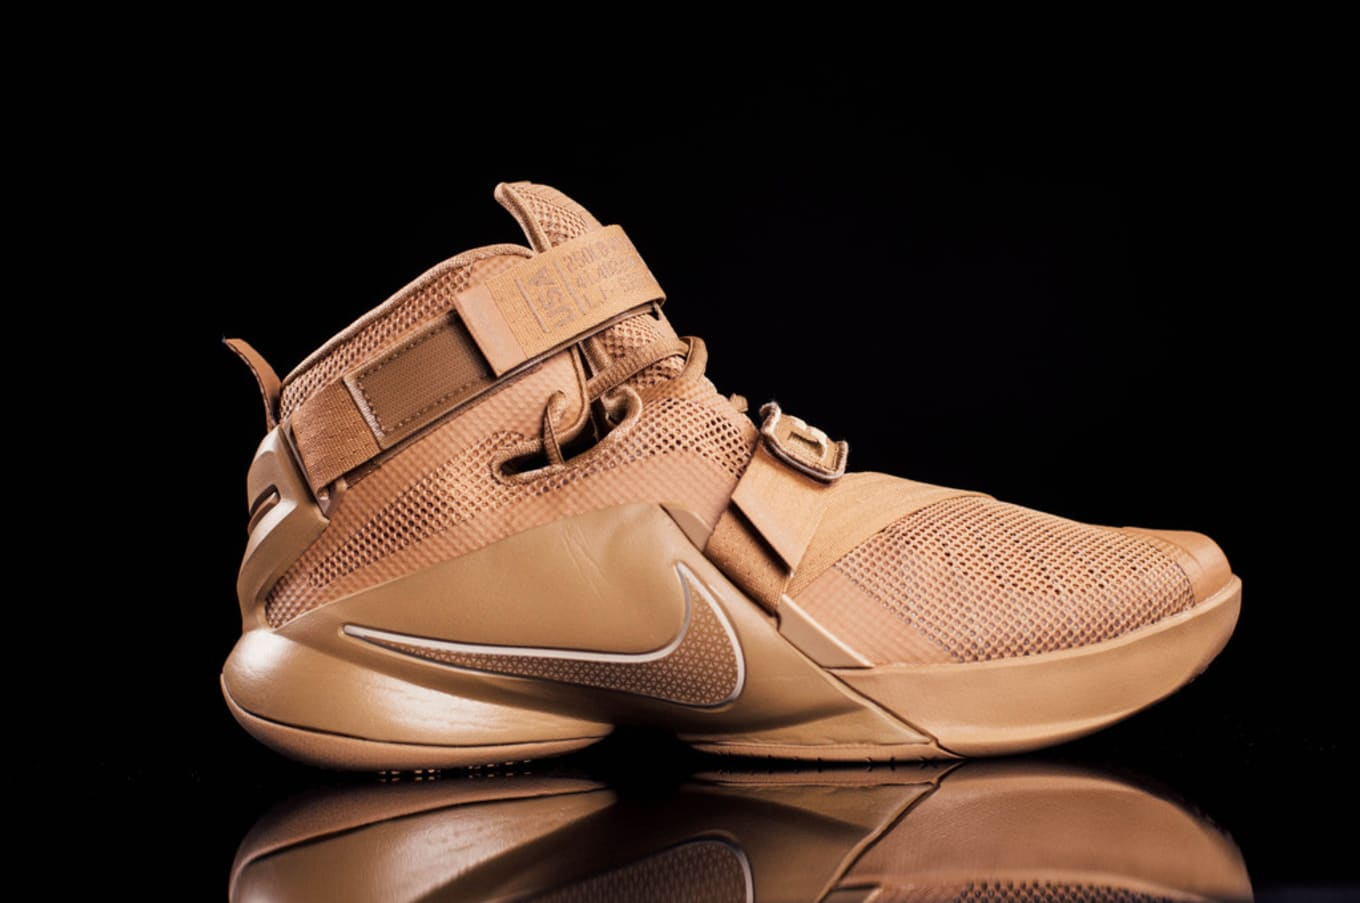 reputable site 388f5 cdc07 Nike LeBron Soldier 9